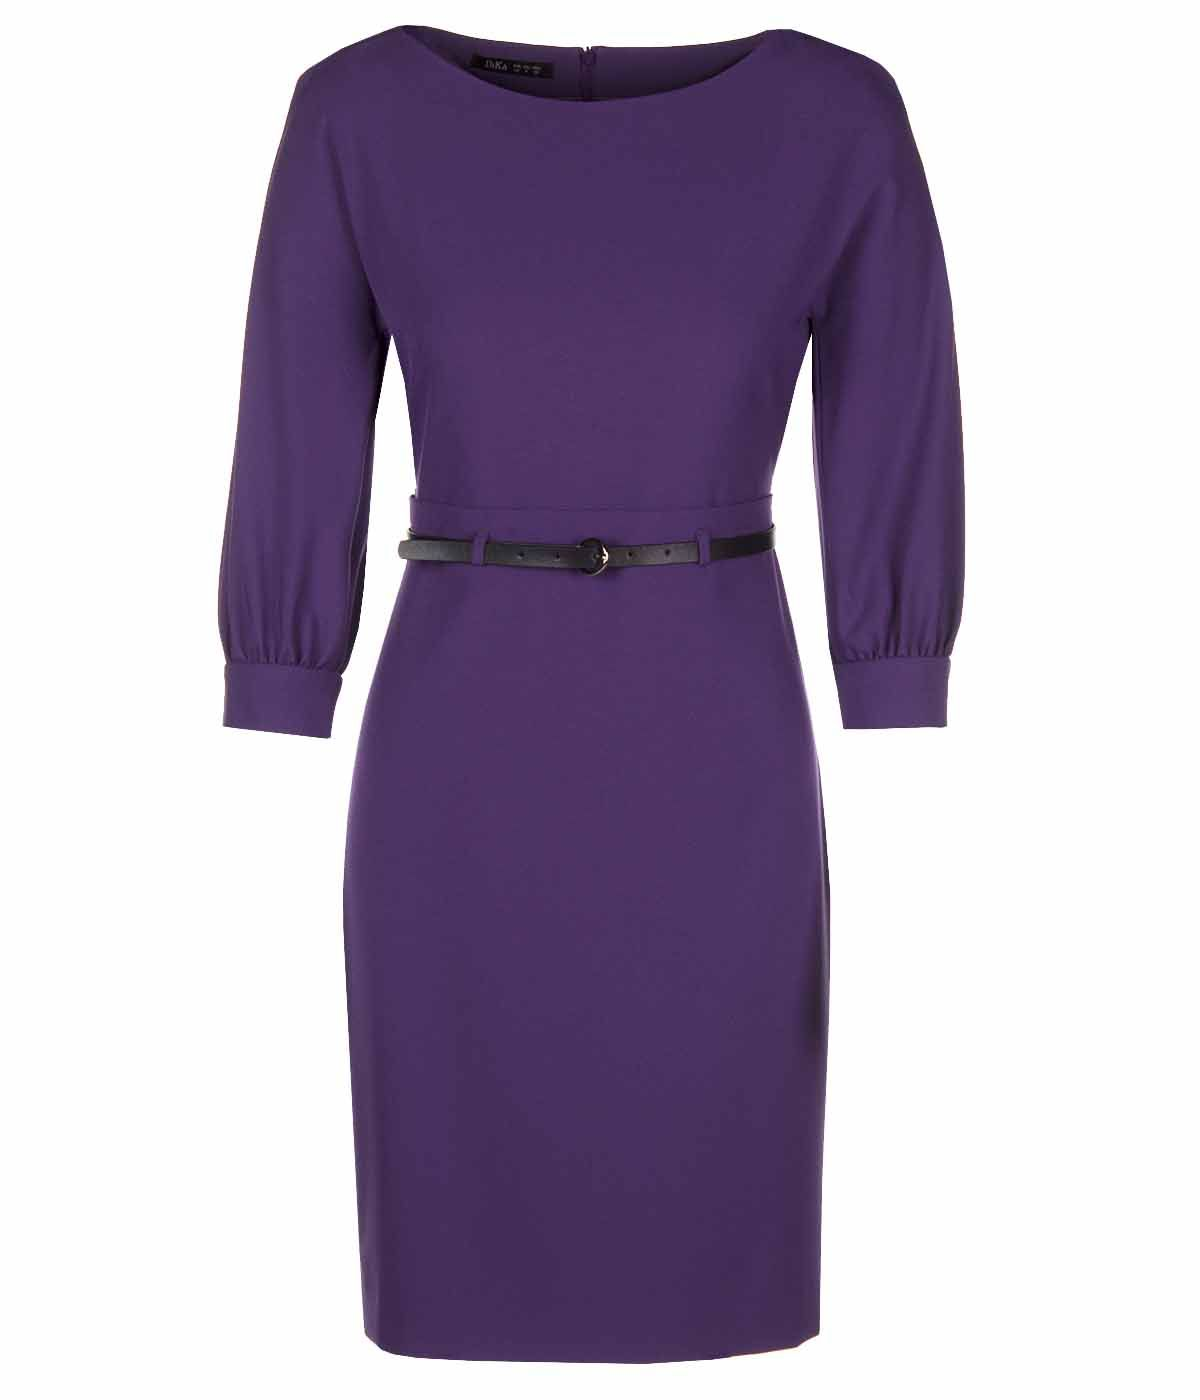 PURPLE LONG SLEEVES DRESS WITH LEATHER BELT 0